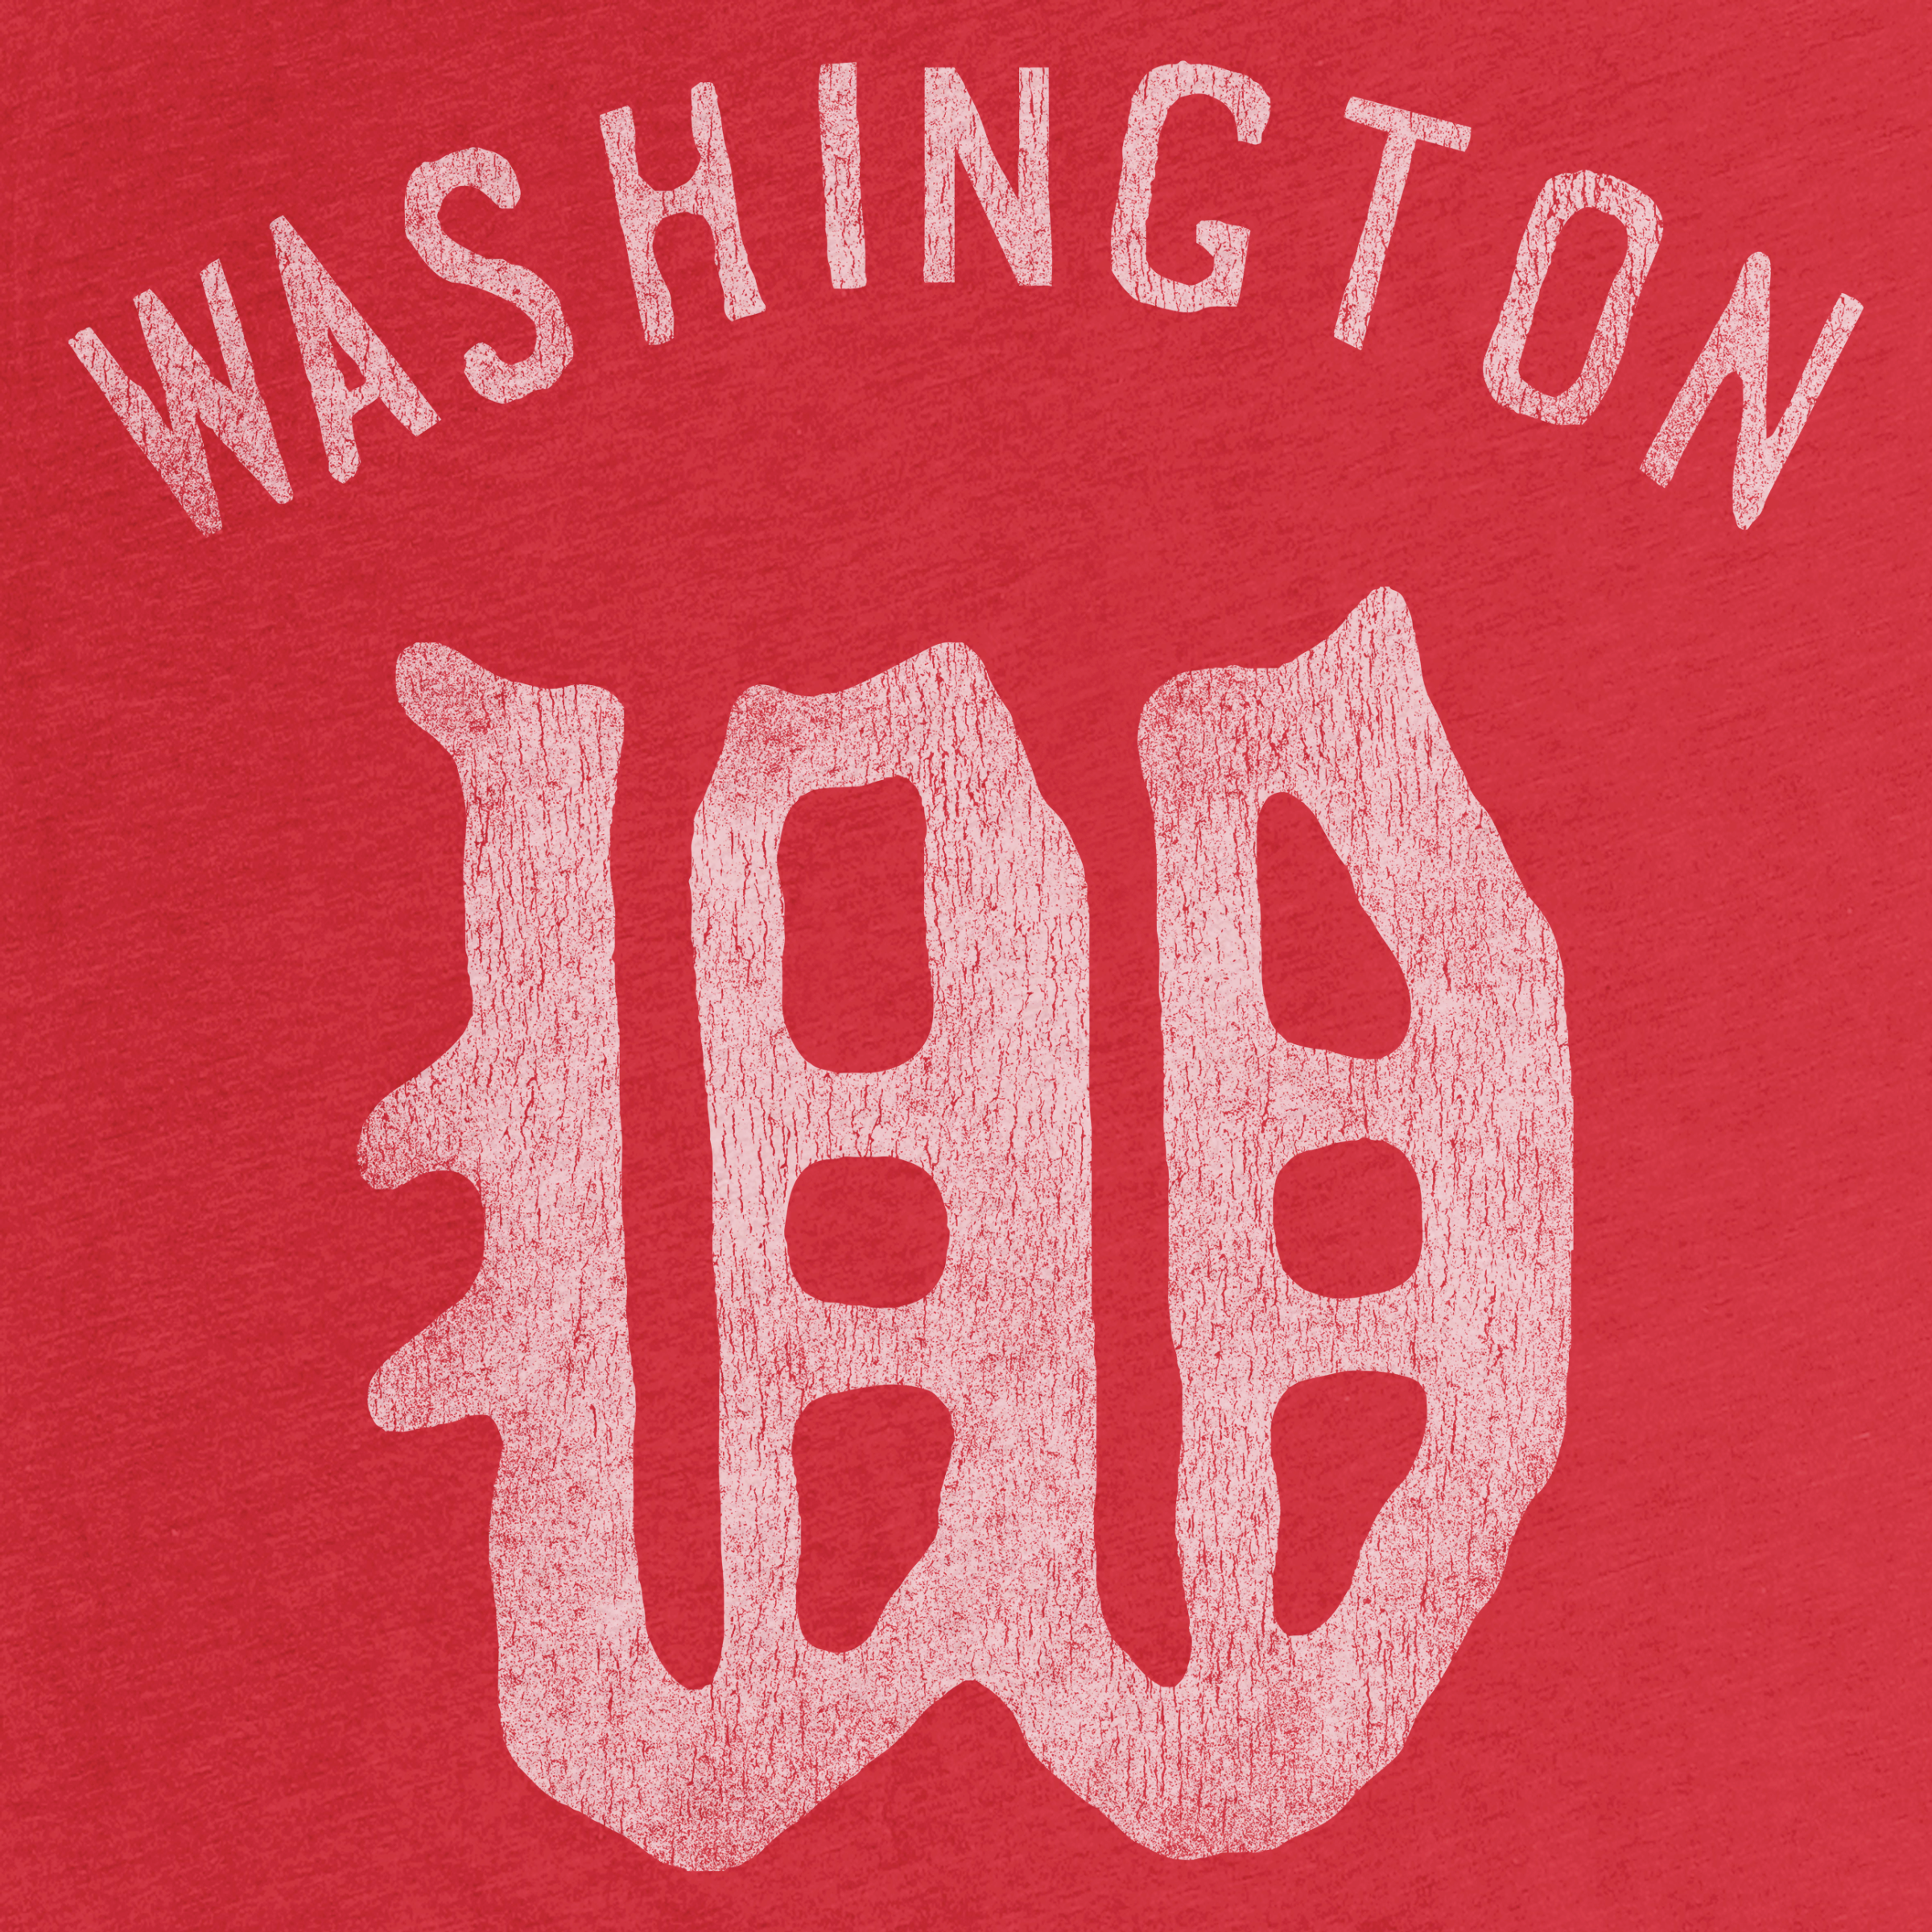 Washington Heritage